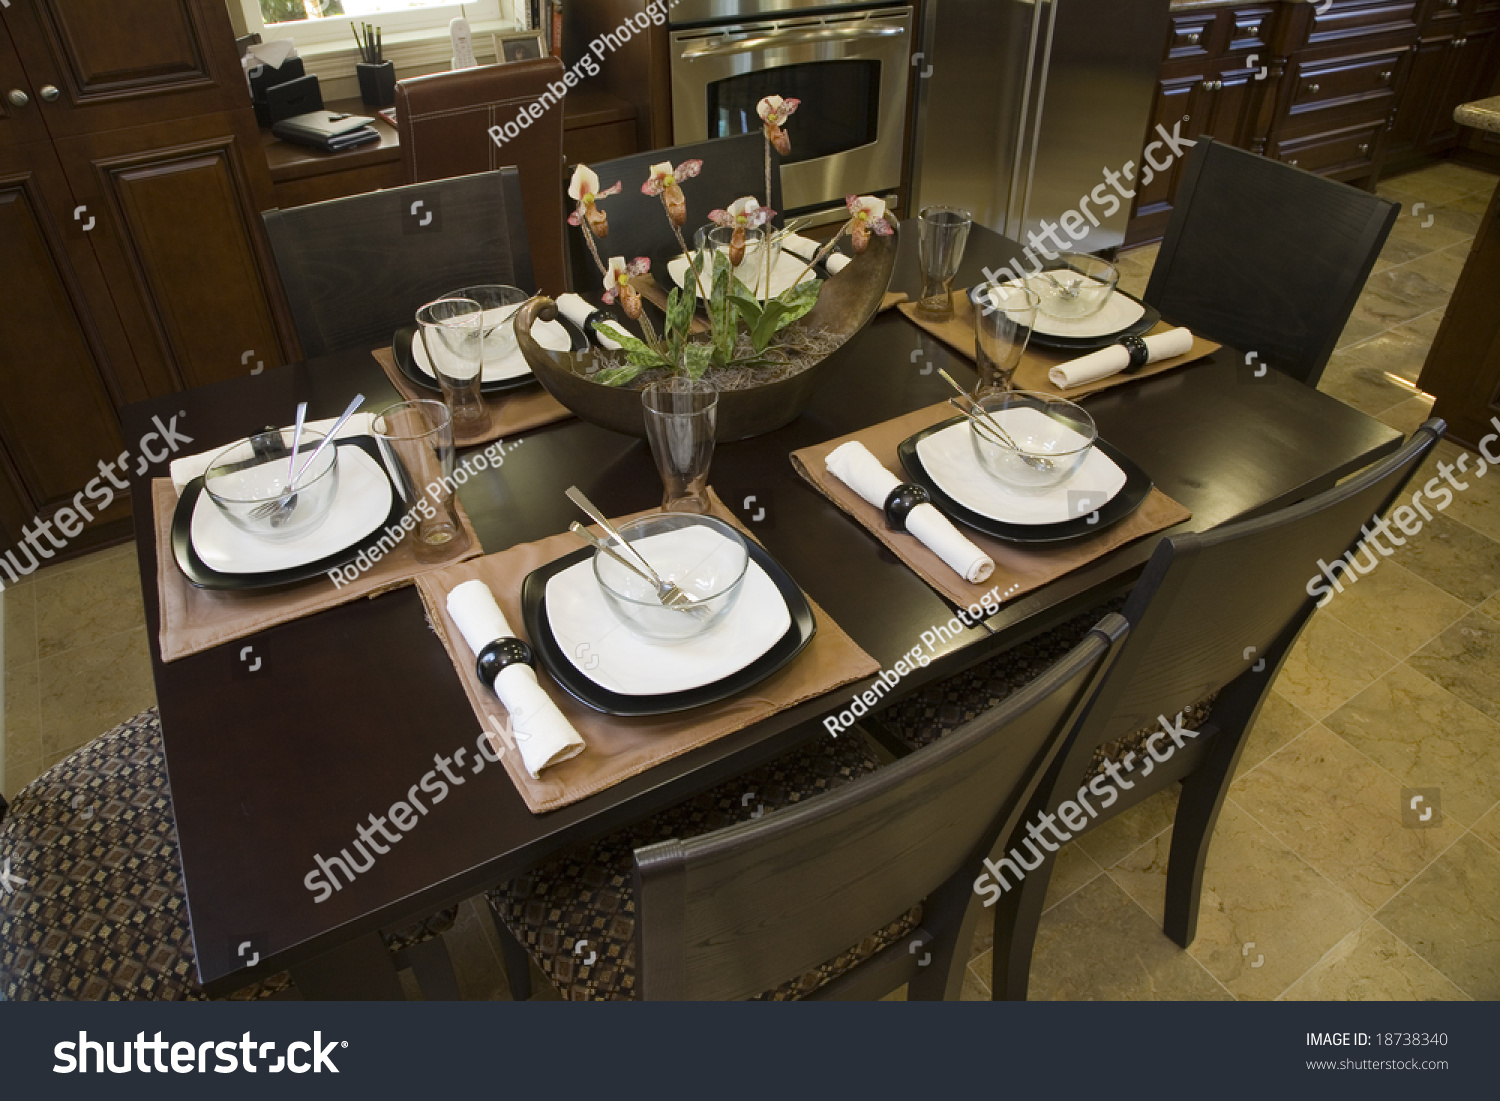 Dining table modern tableware decor stock photo 18738340 for Modern table centerpieces for home